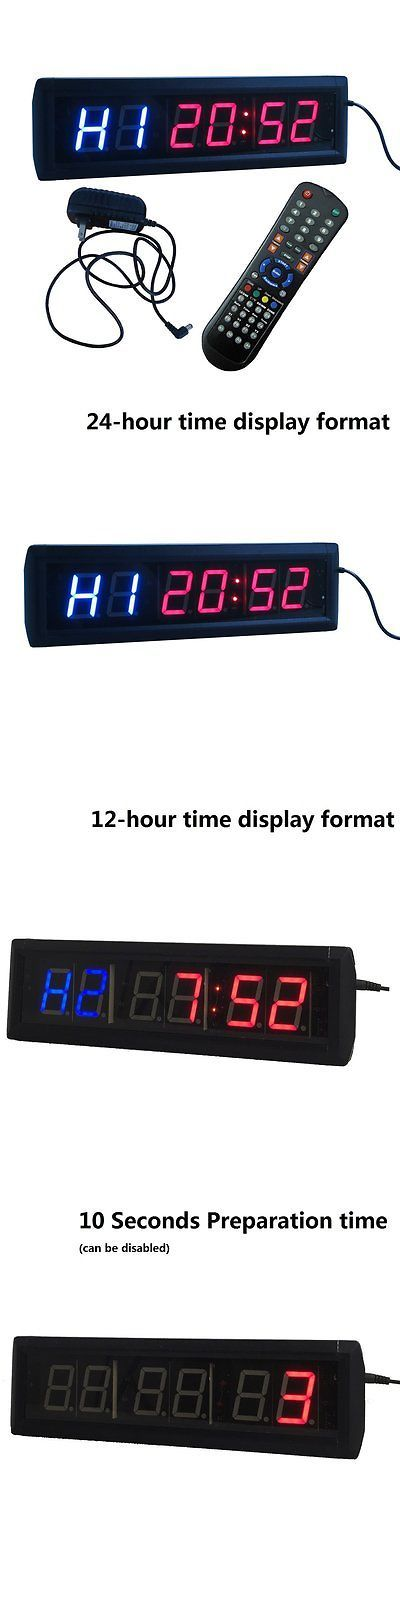 Stopwatches 166149: Ledgital Crossfit Interval Timer Stopwatch Wall Clock W/ Ir Remote BUY IT NOW ONLY: $111.17